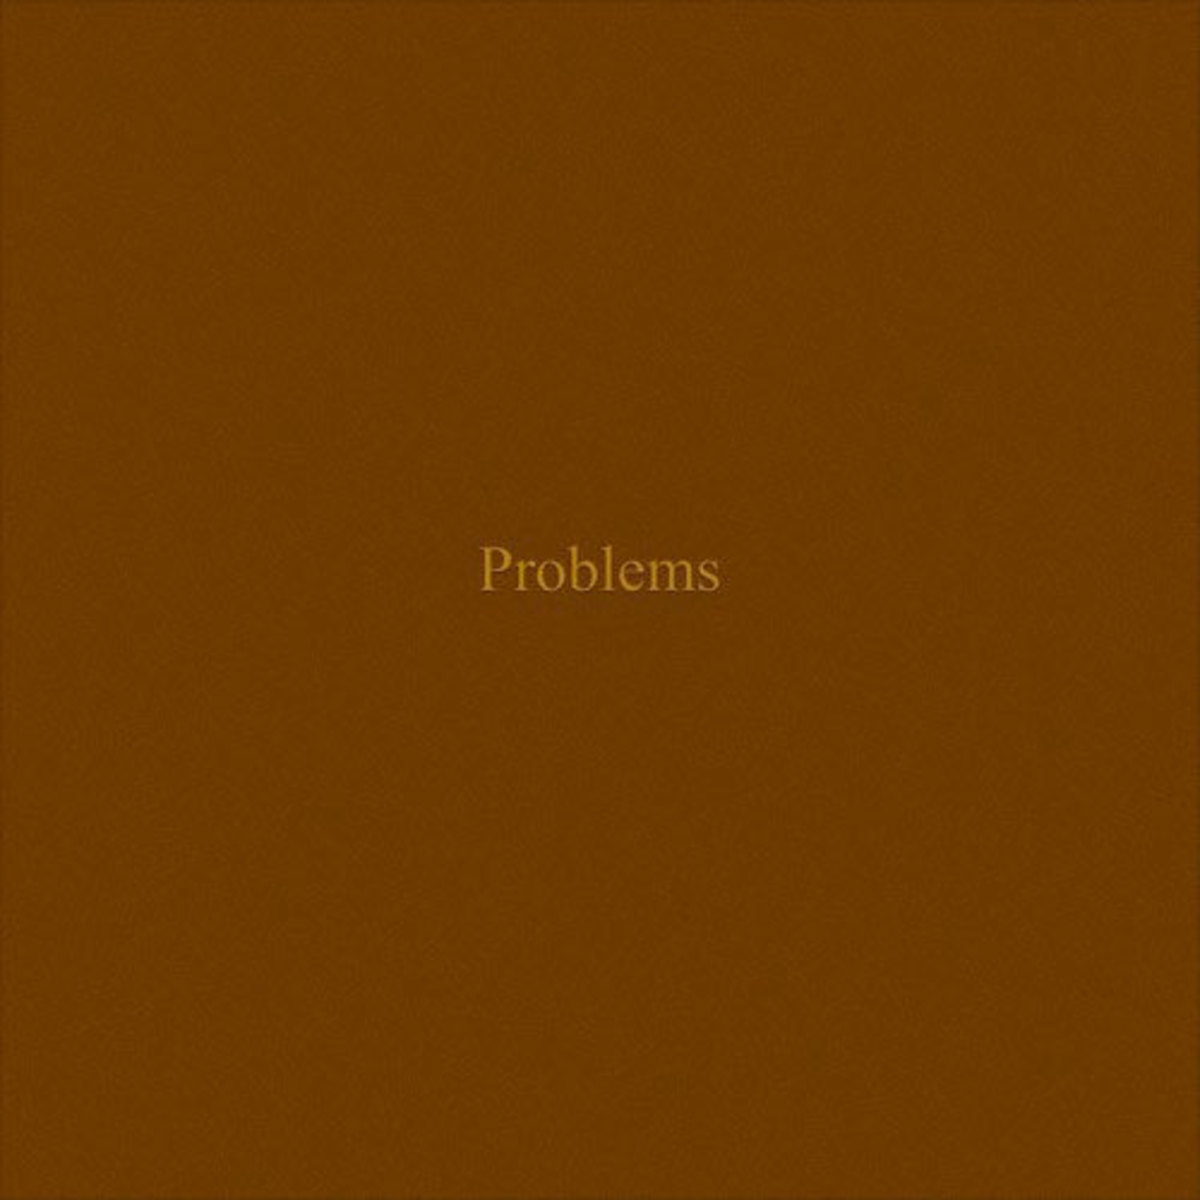 sonreal-problems.jpg